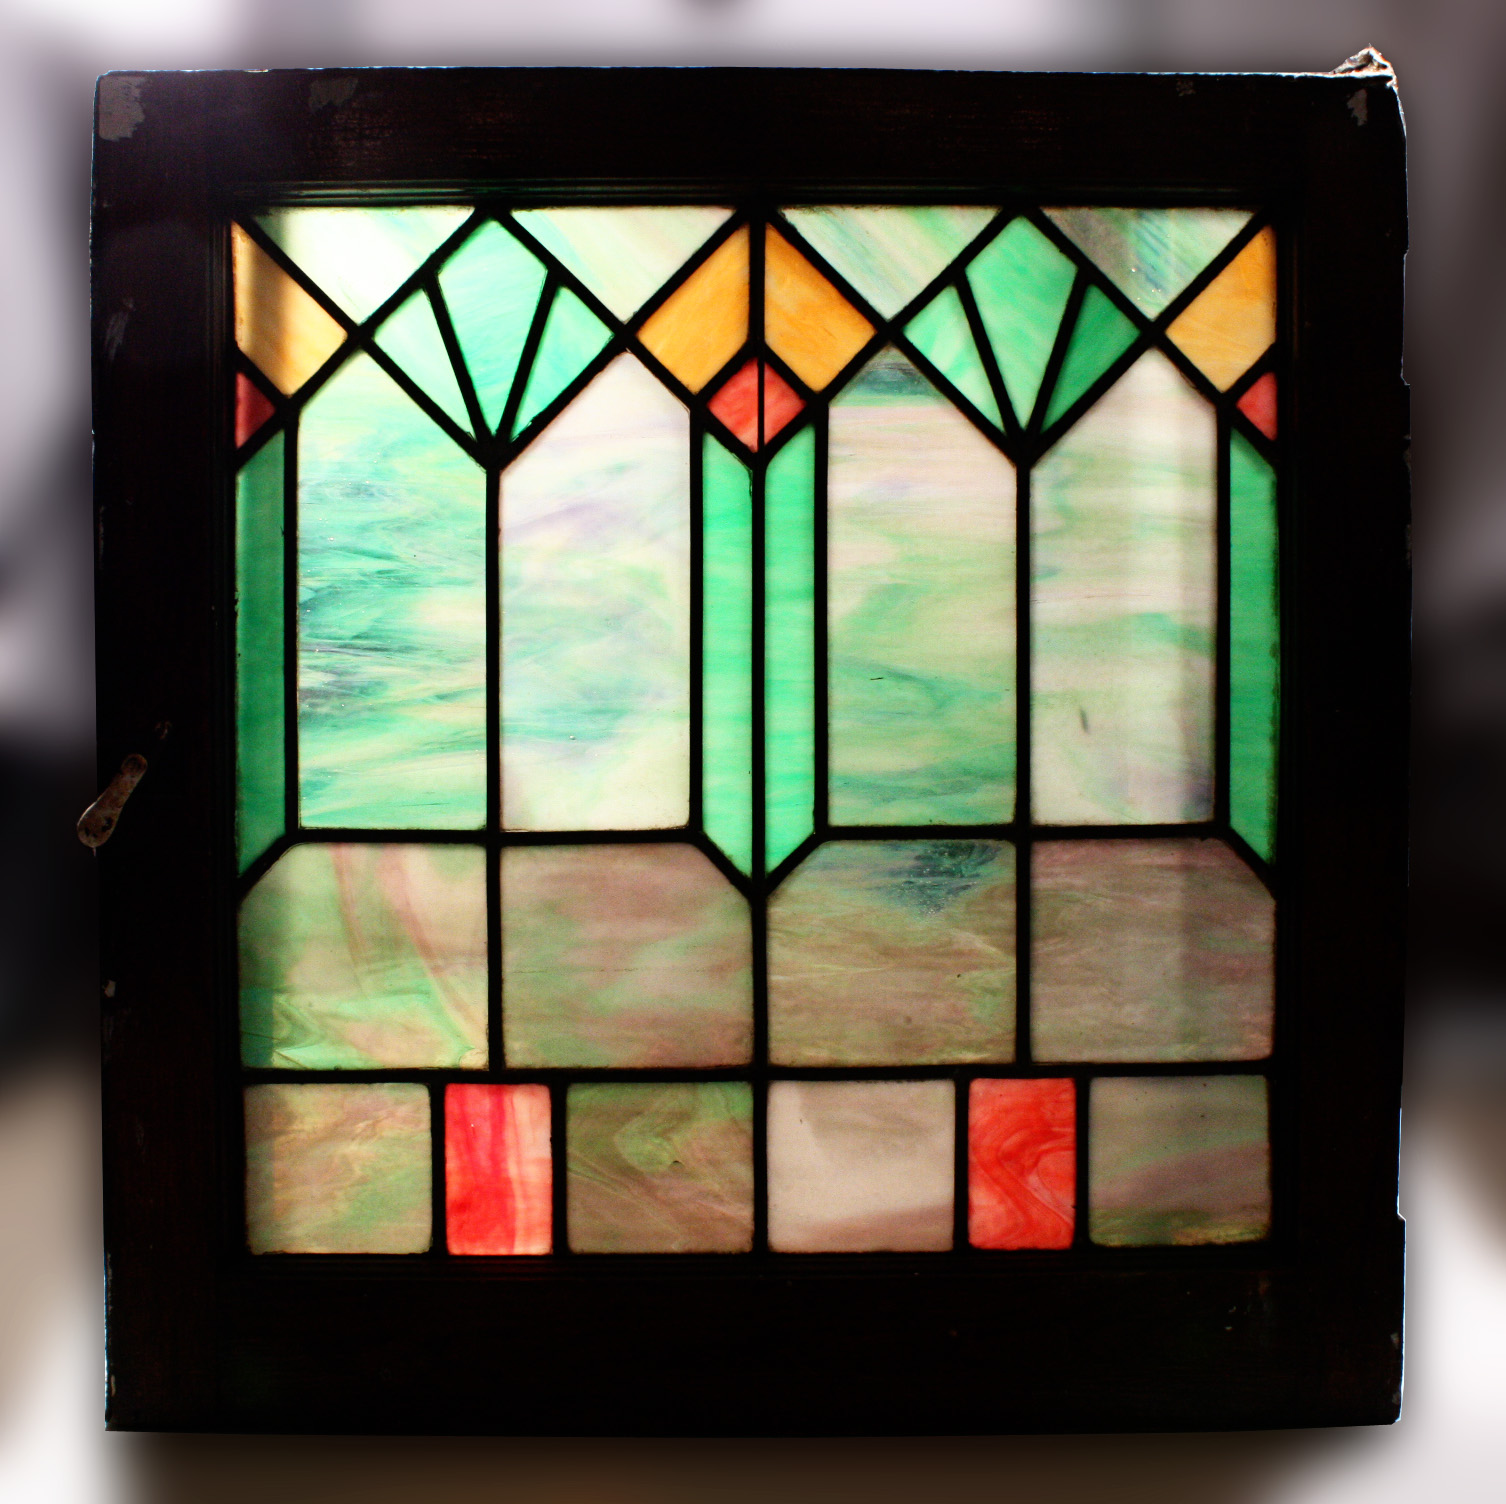 Stain glass crafts for sale for Windows for sale